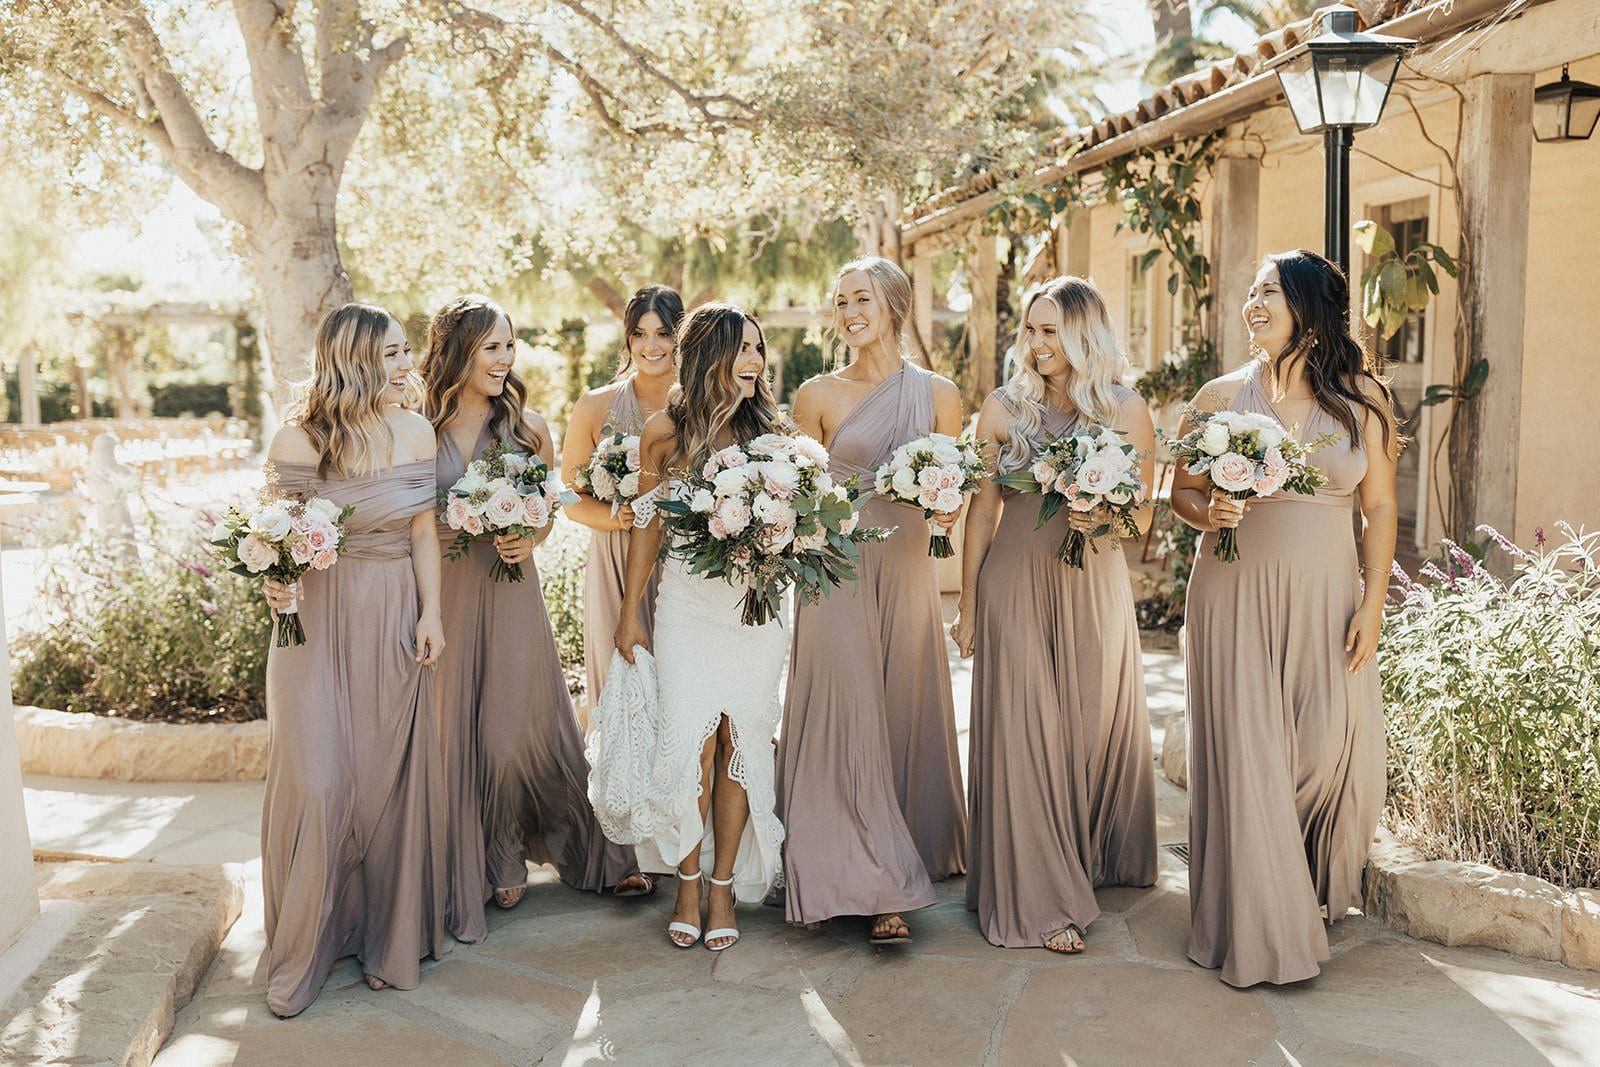 Blonde bride wearing Grace Loves Lace Paloma Gown standing with bridesmaids holding bouquets